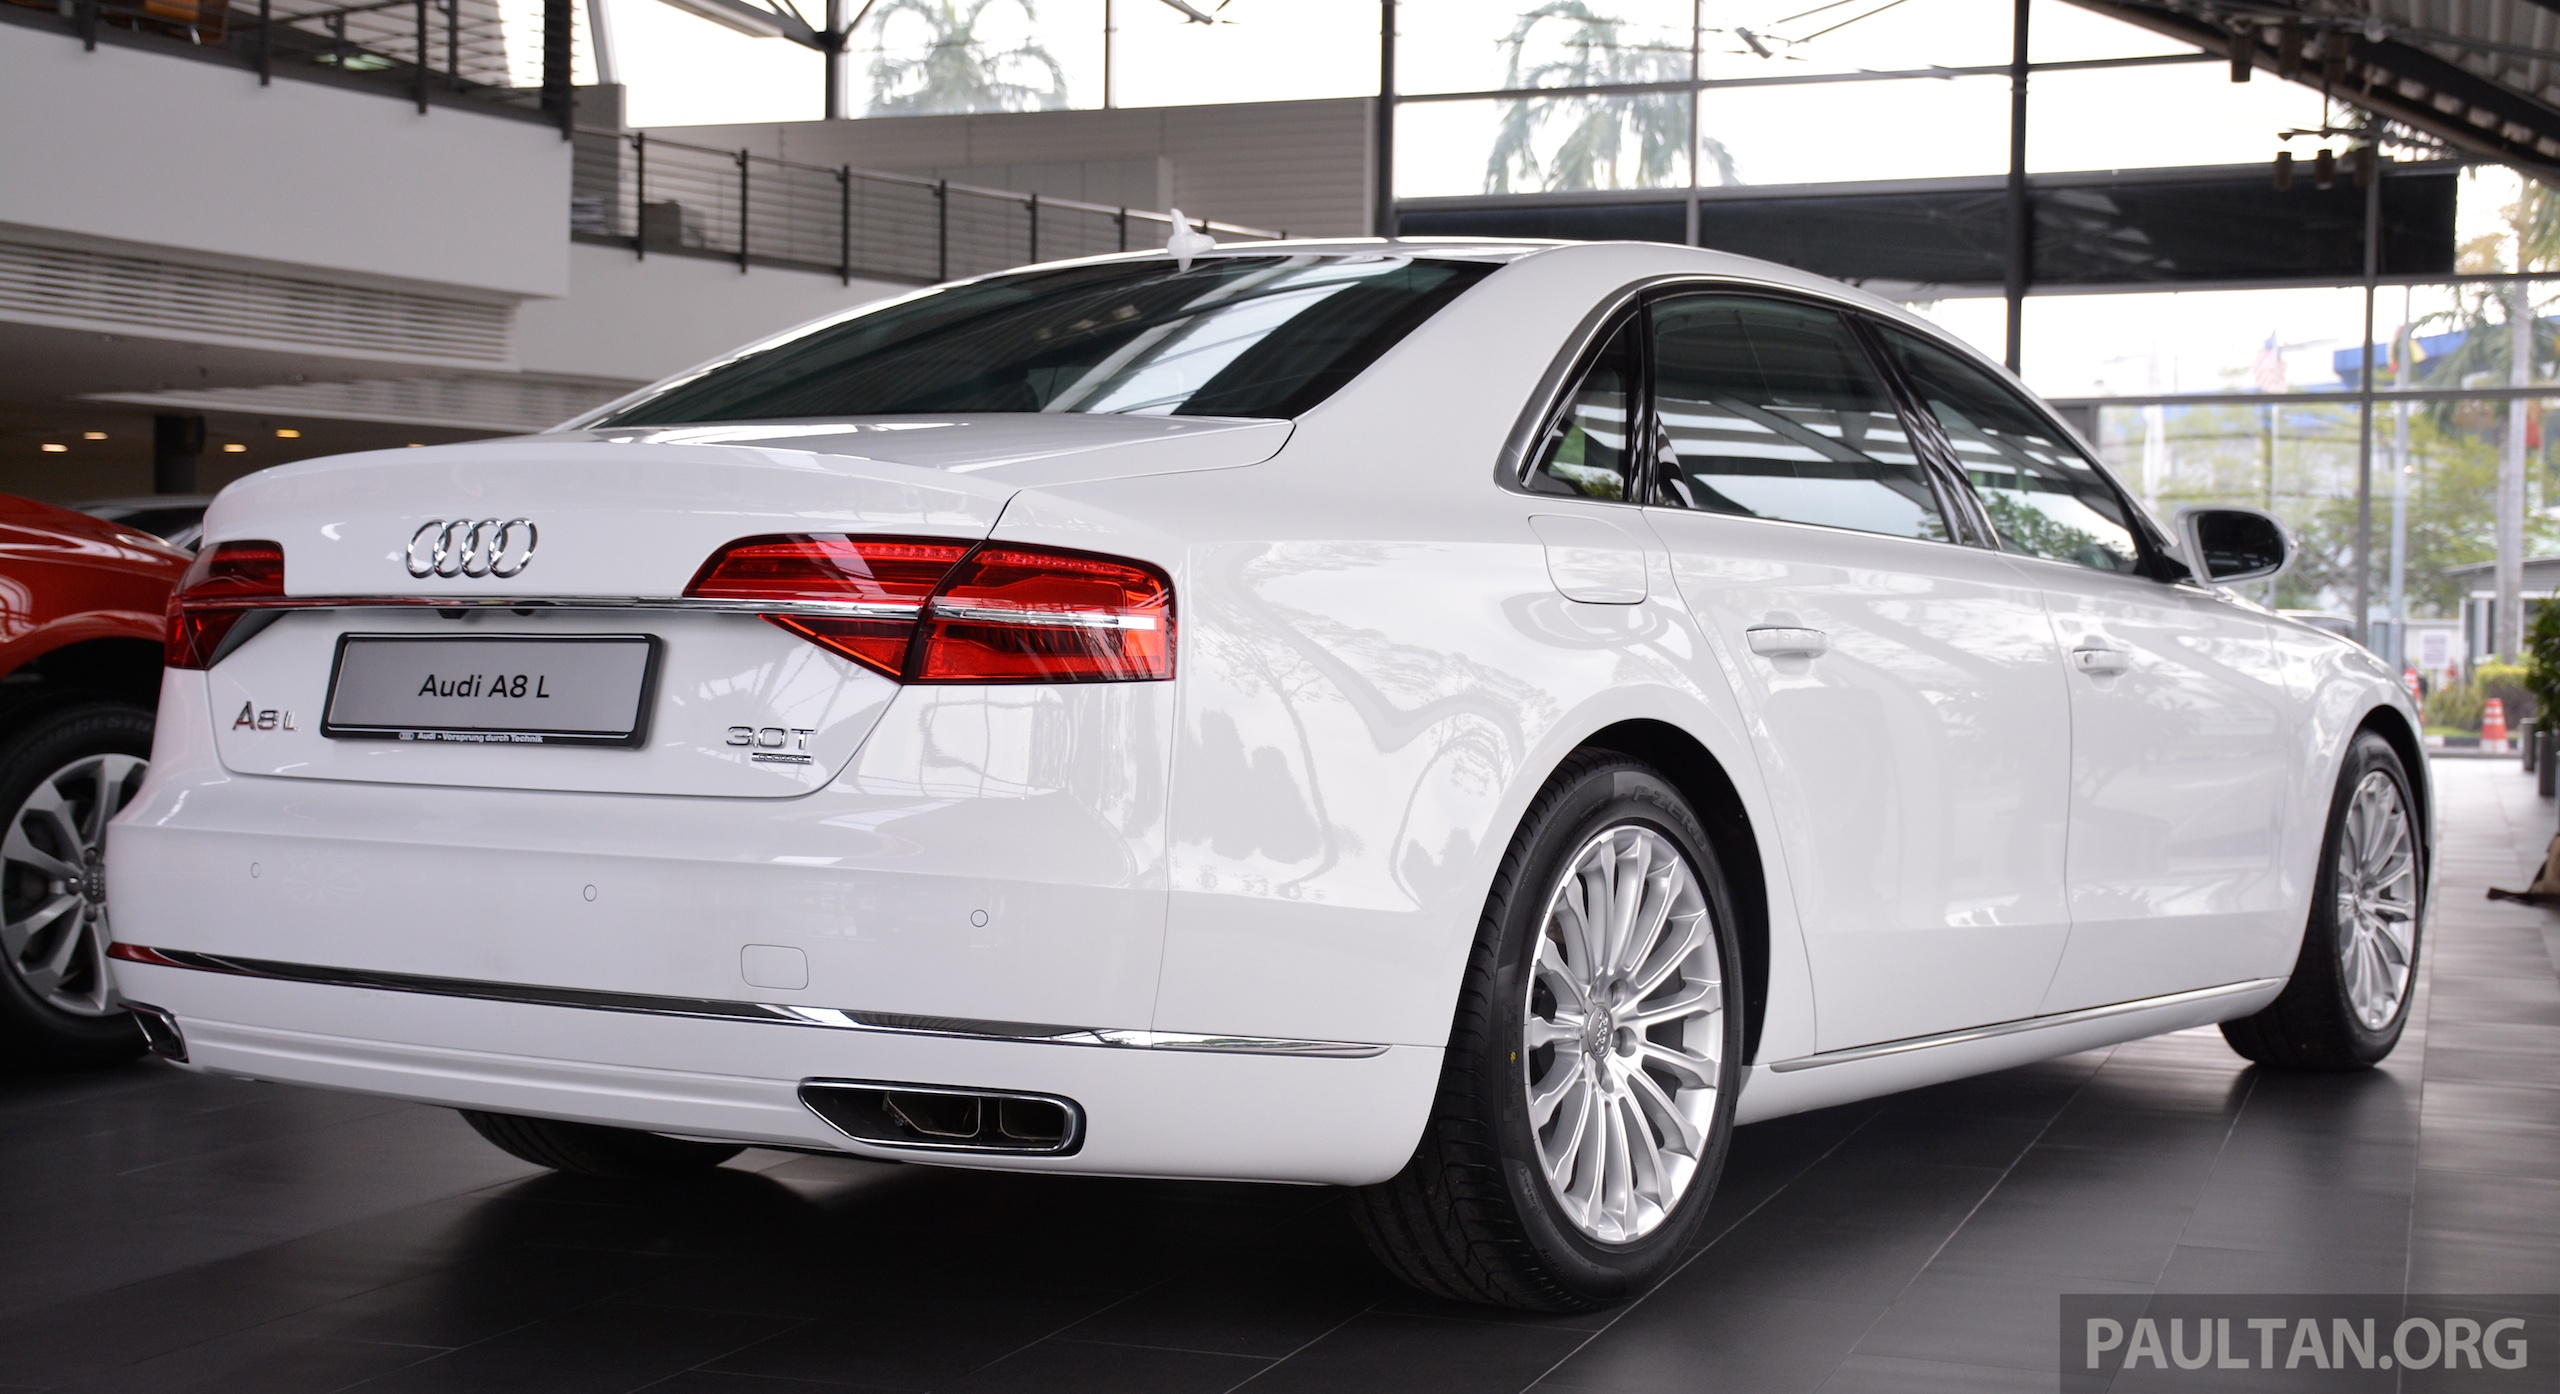 Audi A8 L 3 0 Tfsi Facelift Now On Sale At Rm689 500 Paul